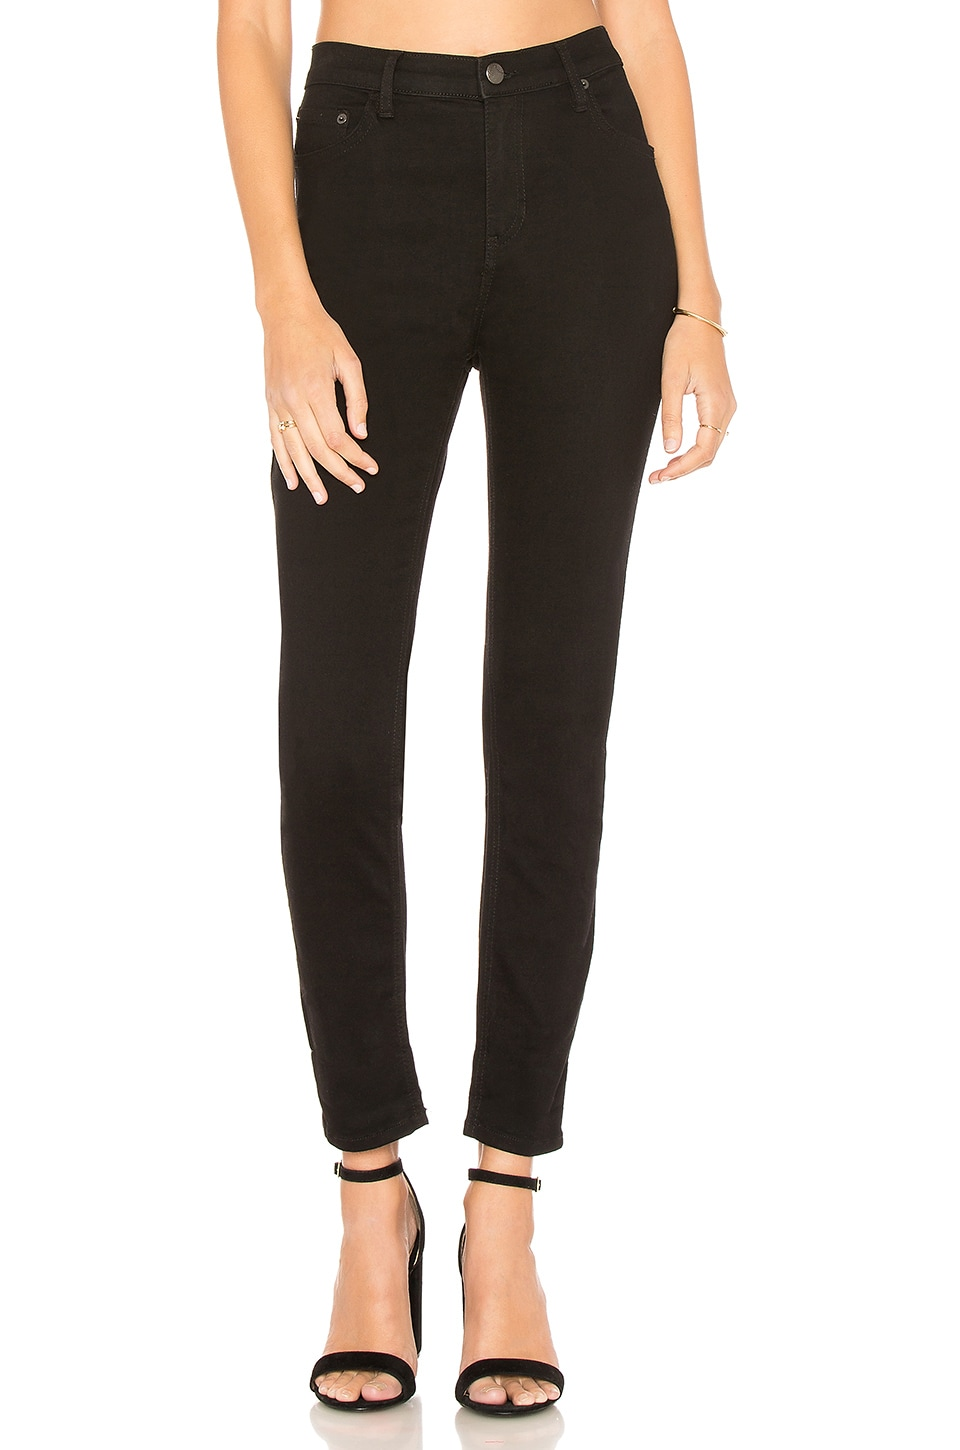 Free People High Rise Long And Lean Jean in Black